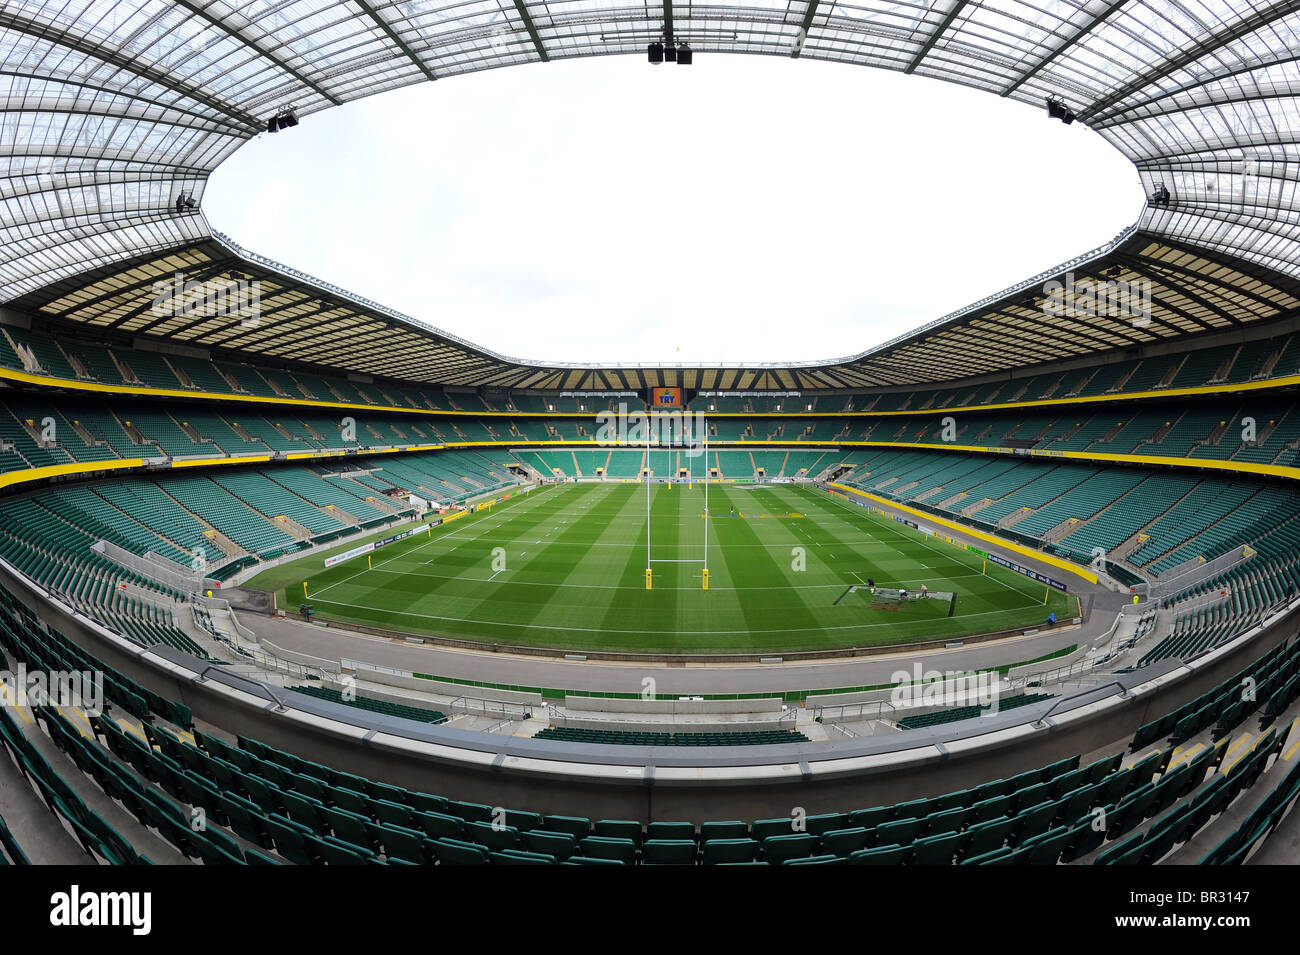 Vue à l'intérieur du stade de Twickenham, London, Londres. Accueil de la Rugby Football Union RFU Photo Stock